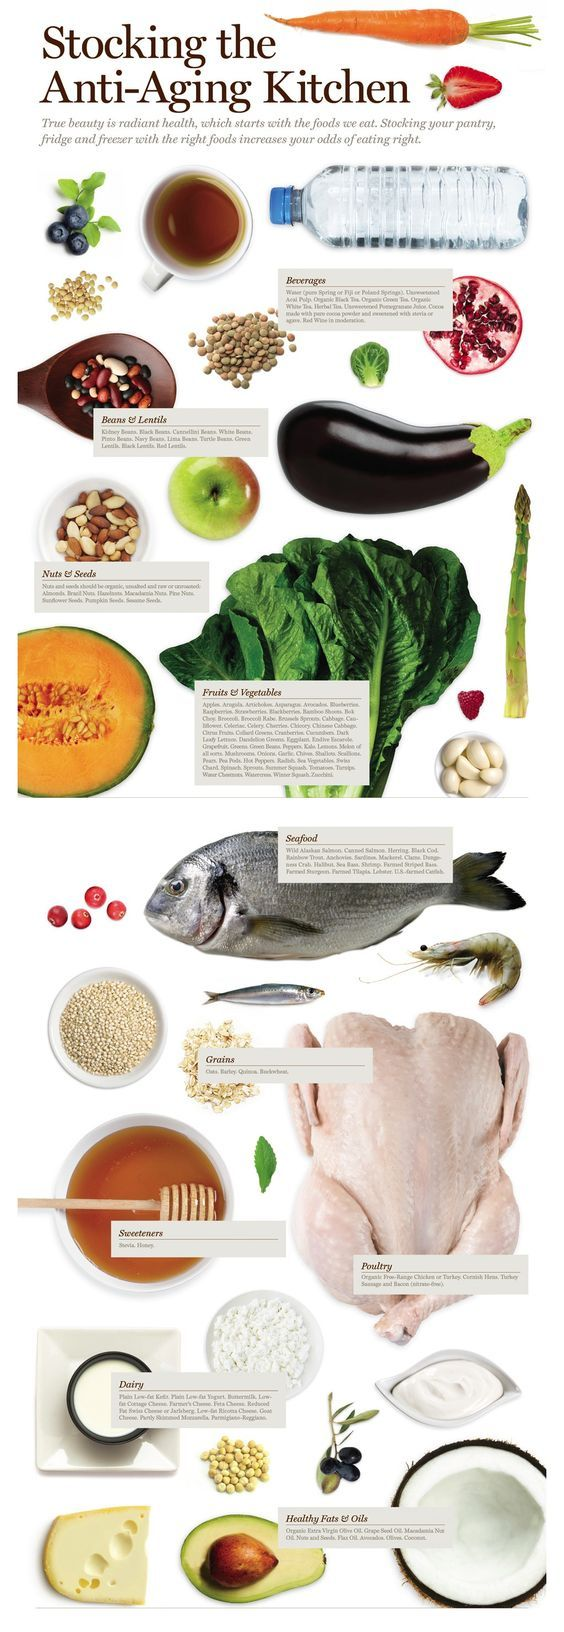 Take this list to the supermarket and stock up on the most potent anti-aging foods // www.skinnymetea.com.au/blogs/smtblog